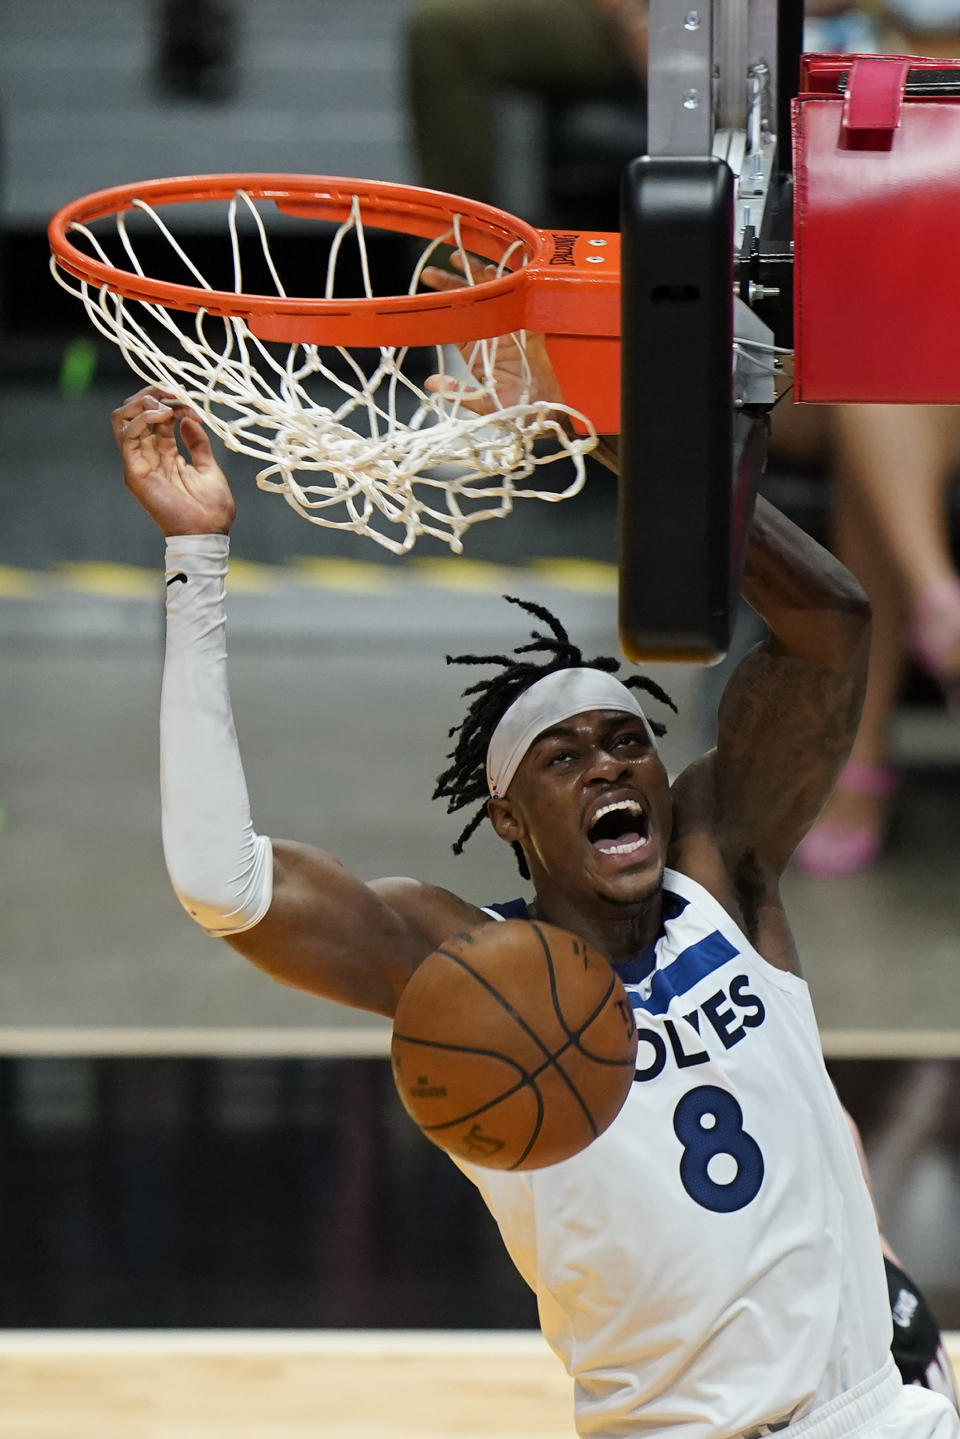 Minnesota Timberwolves forward Jarred Vanderbilt dunks during the first half of an NBA basketball game against the Miami Heat, Friday, May 7, 2021, in Miami. (AP Photo/Wilfredo Lee)